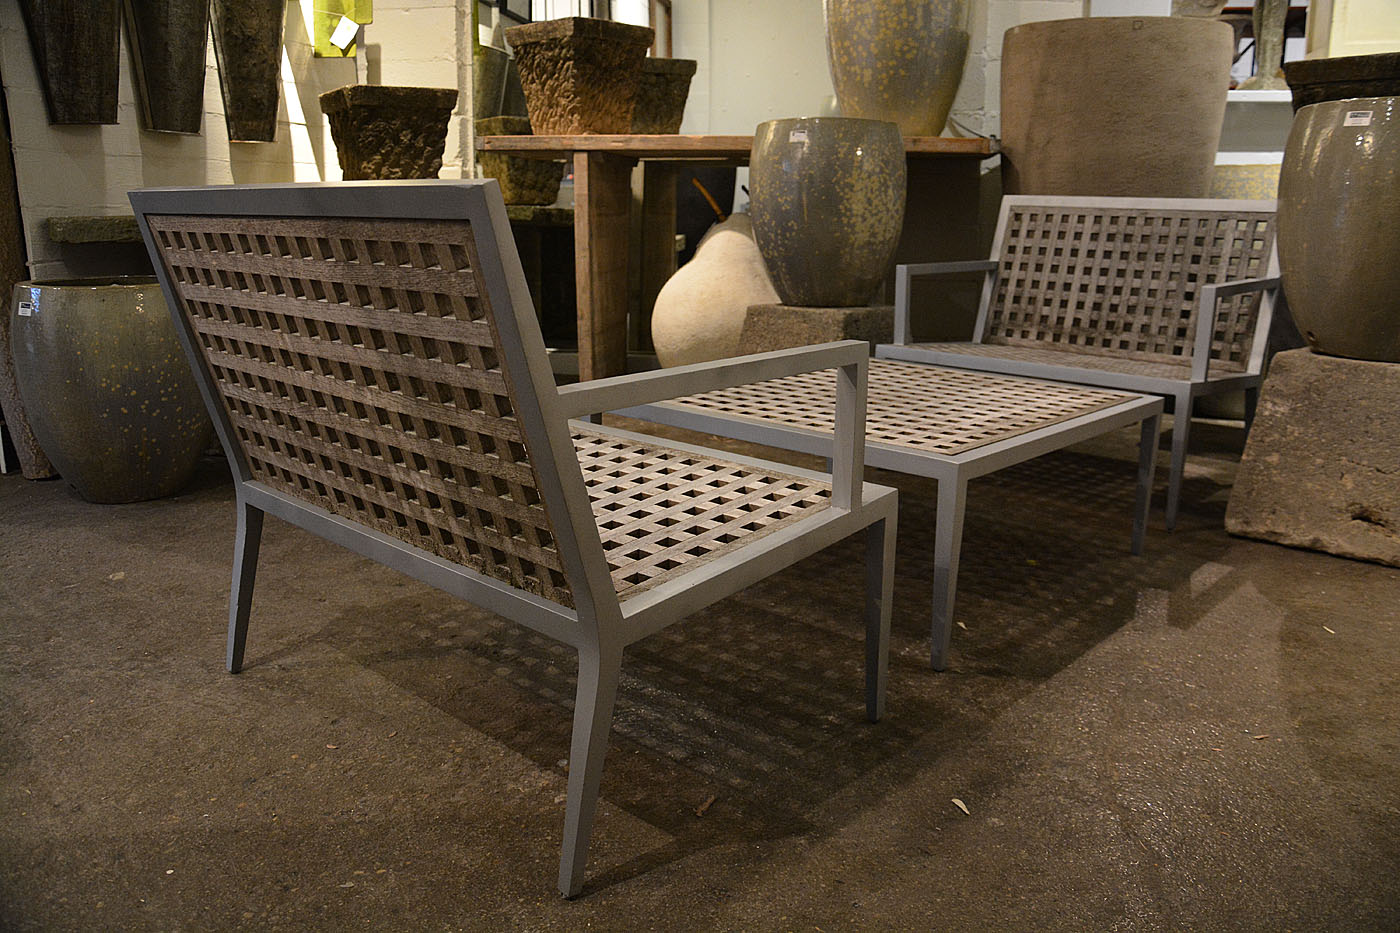 Three Piece McGuire Archetype Aluminum And Teak Patio Set